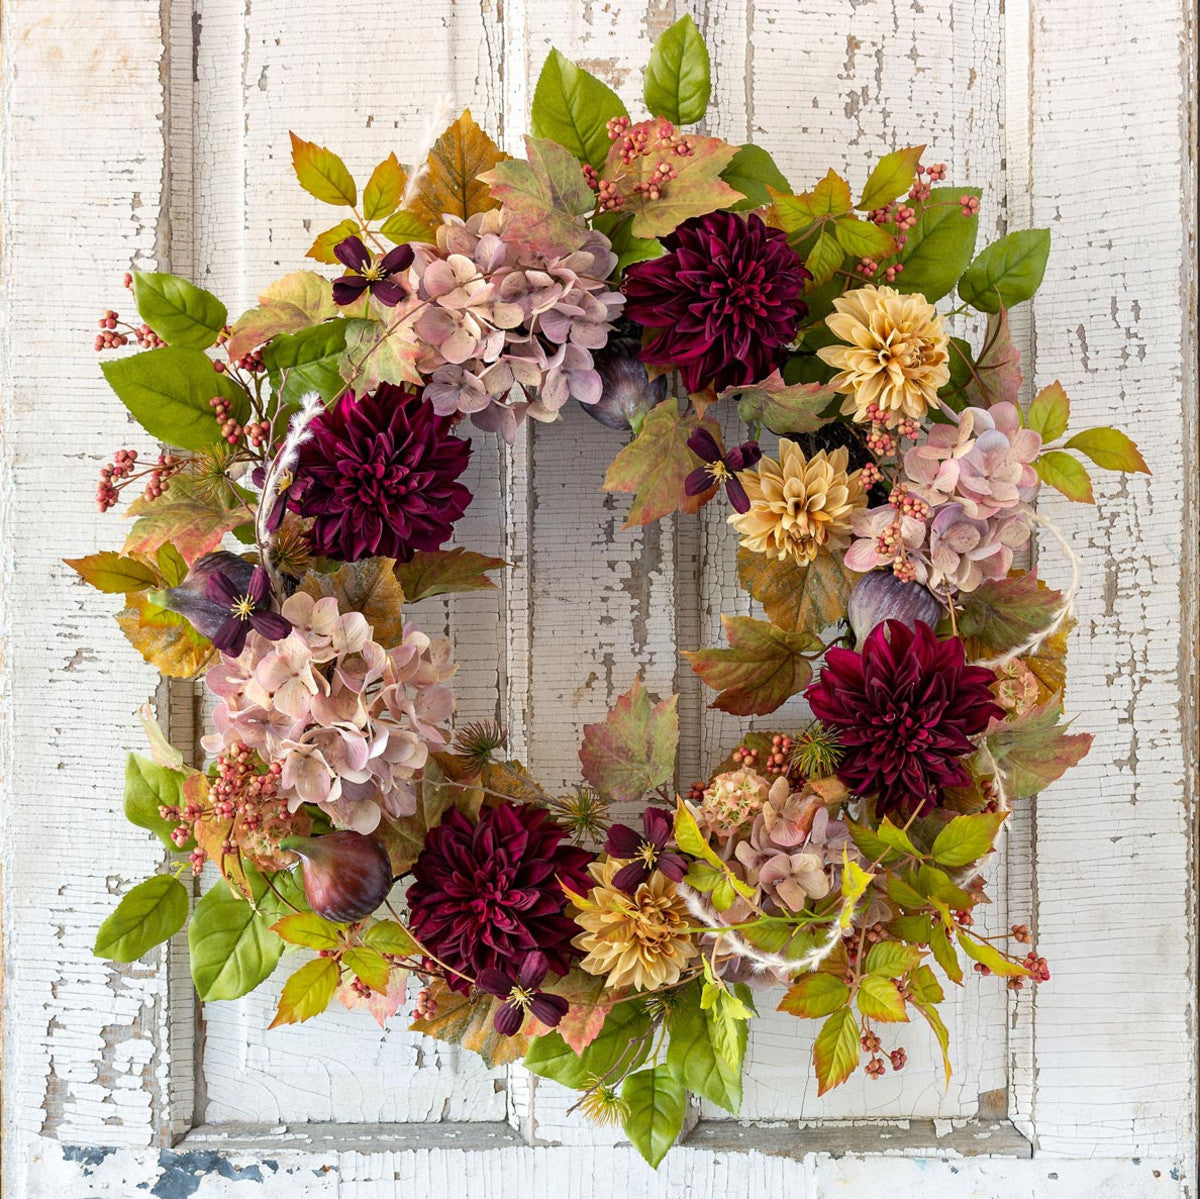 Old Flower Market Botanical Wreath